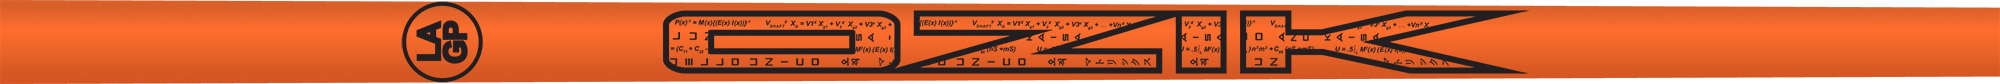 Ozik Red Tie: Neon Orange Black Matte - Wood 50 R